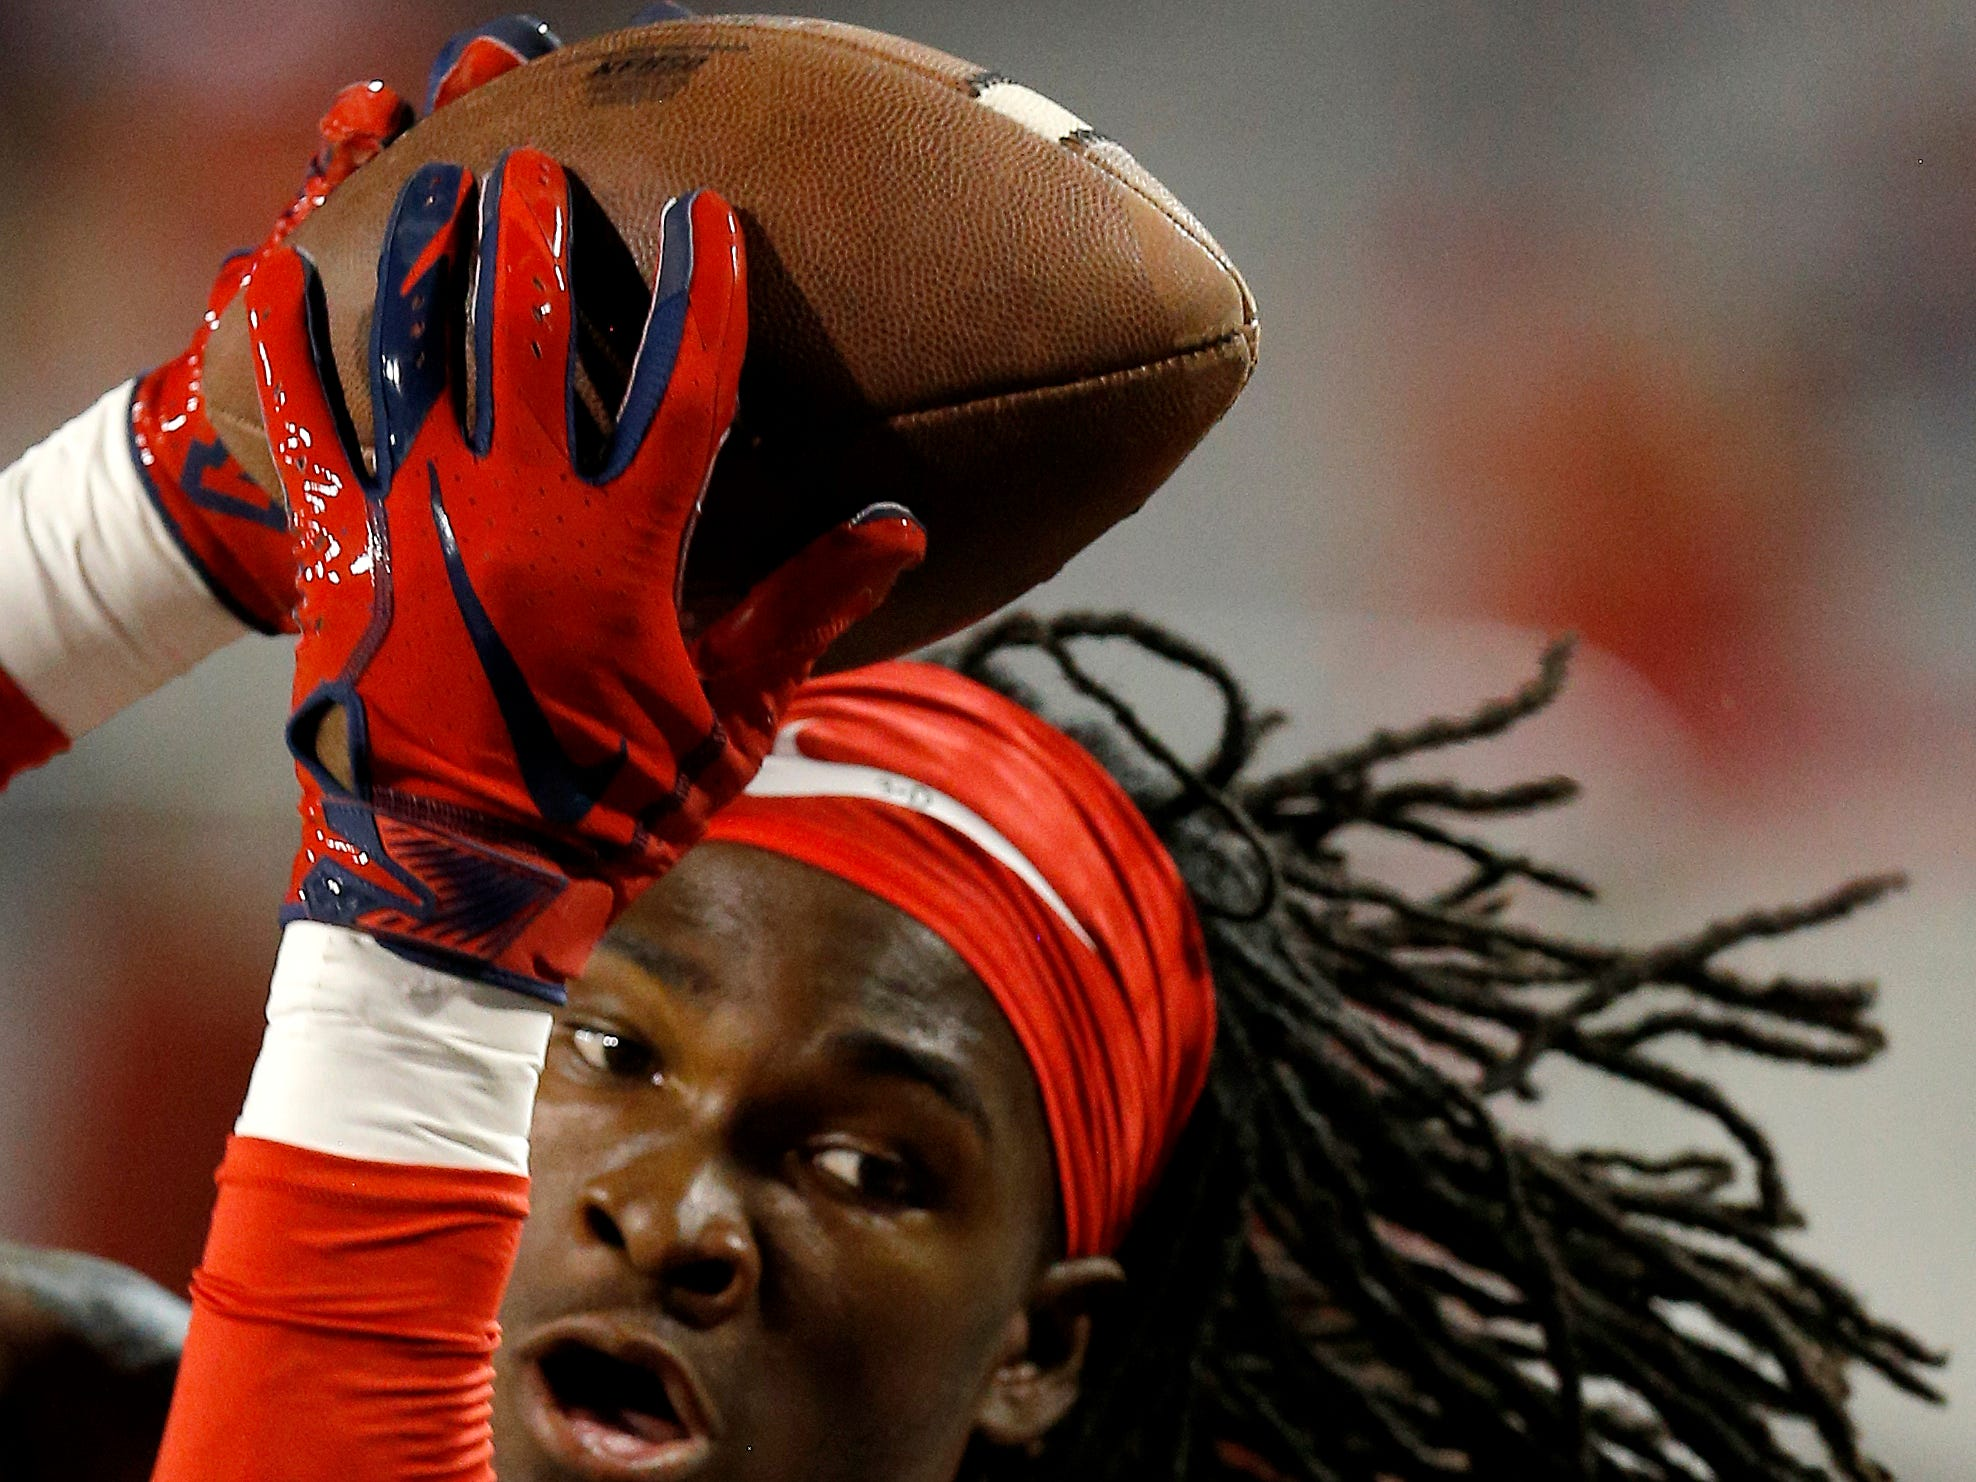 Arizona safety Jarrius Wallace (3) warms up before an NCAA college football game against Southern Utah, Saturday, Sept. 15, 2018, in Tucson, Ariz. (AP Photo/Rick Scuteri)